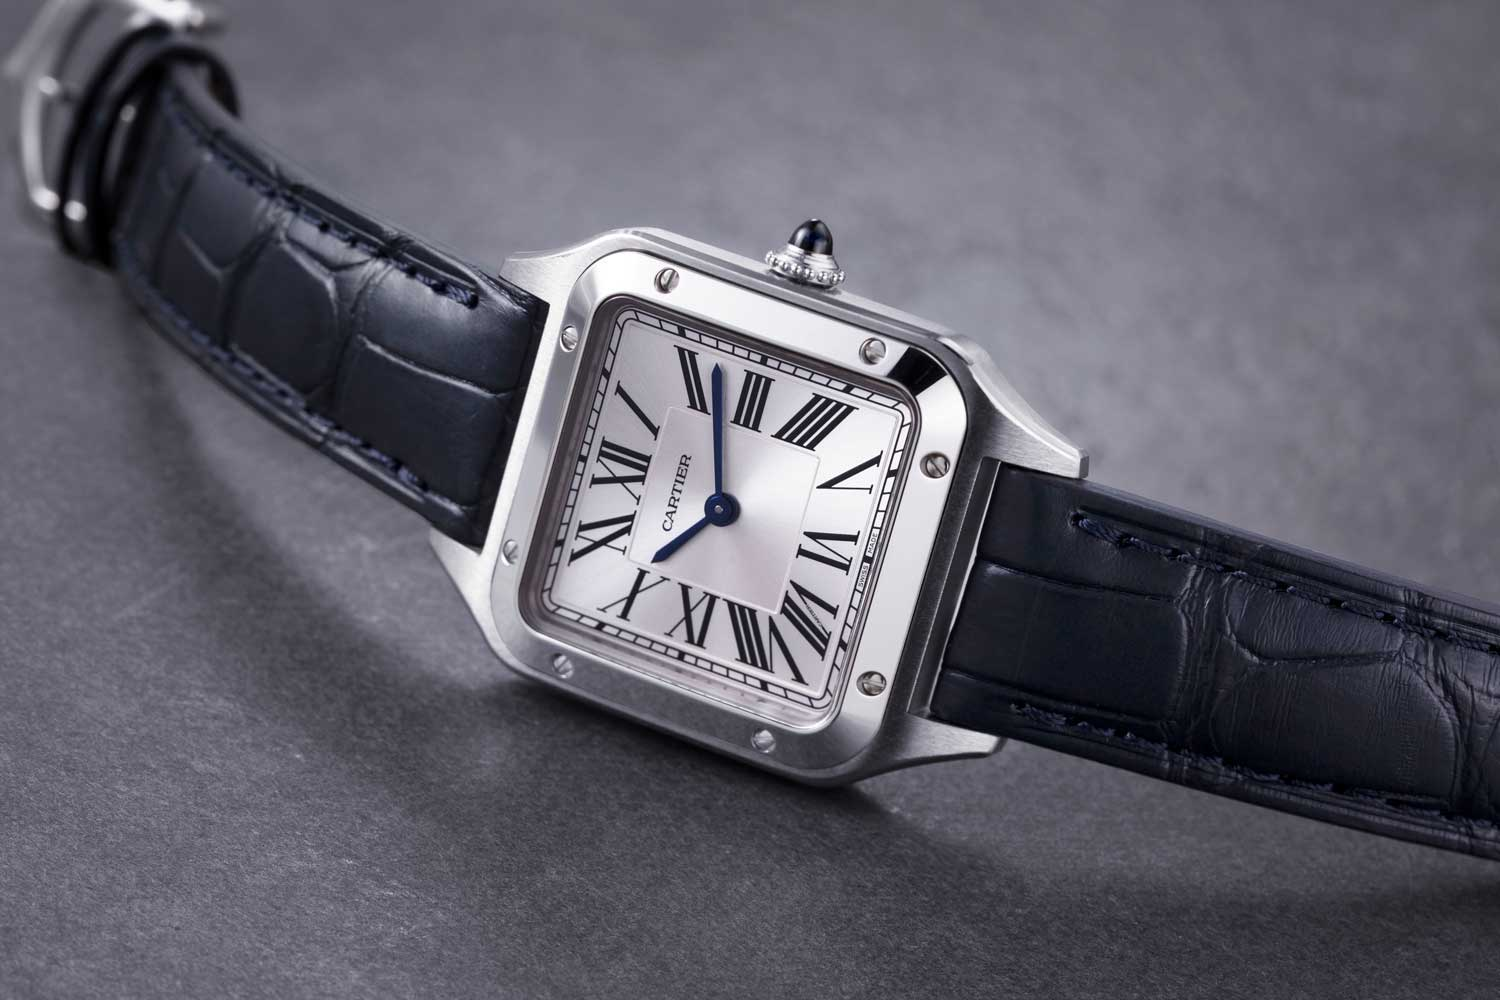 The 2019 Cartier Santos-Dumont Watch, measuring in at 31.4 x 43.5 mm, in stainless steel; powered by a quartz movement; interesting to note that since its reintroduction in 2019, the bezel of the Santos-Dumont features small screws as opposed to rivets (©Revolution)